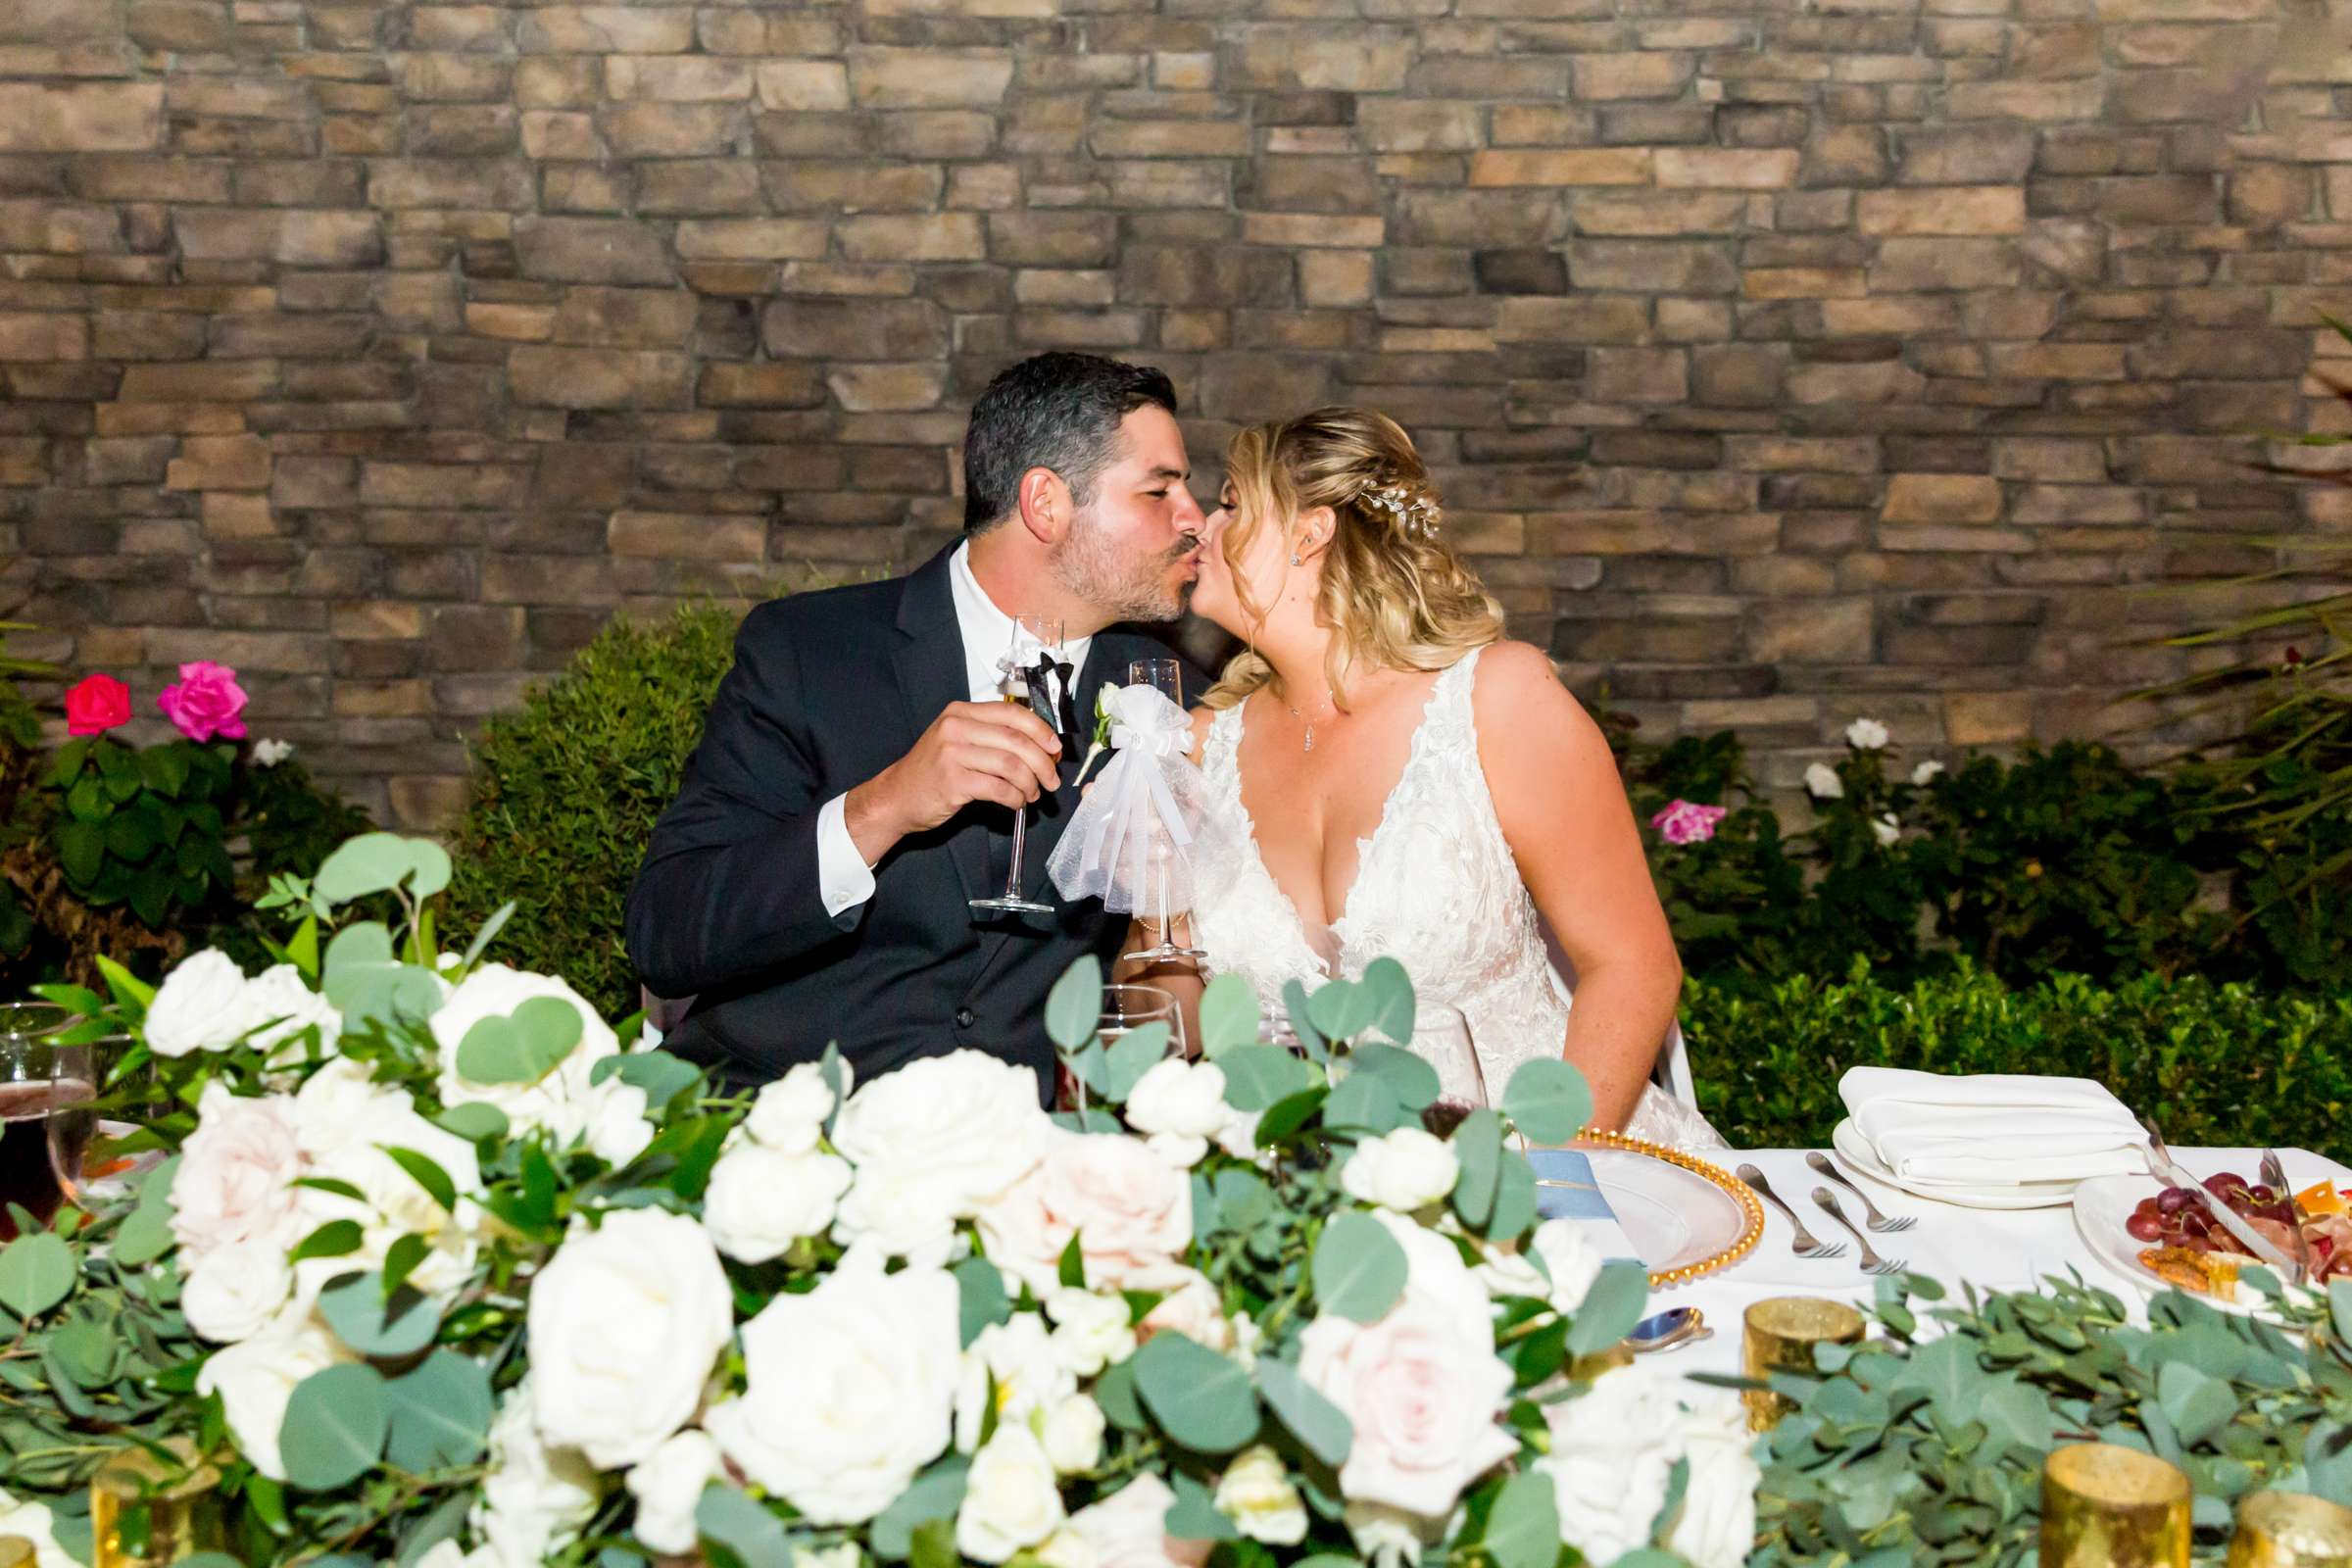 Cape Rey Carlsbad, A Hilton Resort Wedding, Michelle and Justin Wedding Photo #85 by True Photography